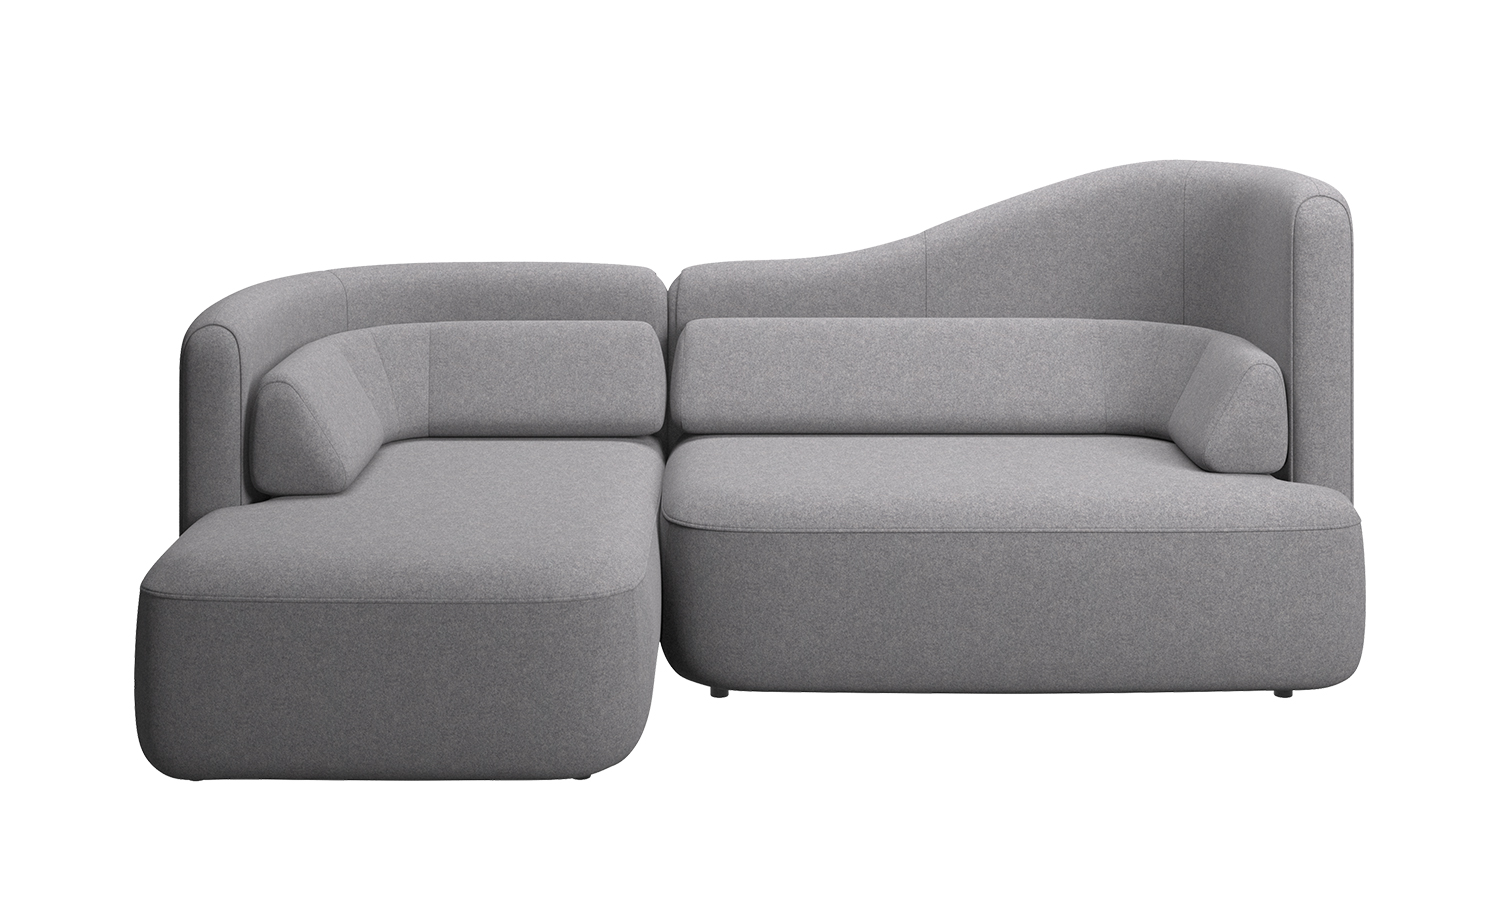 Grey Ottawa sofa